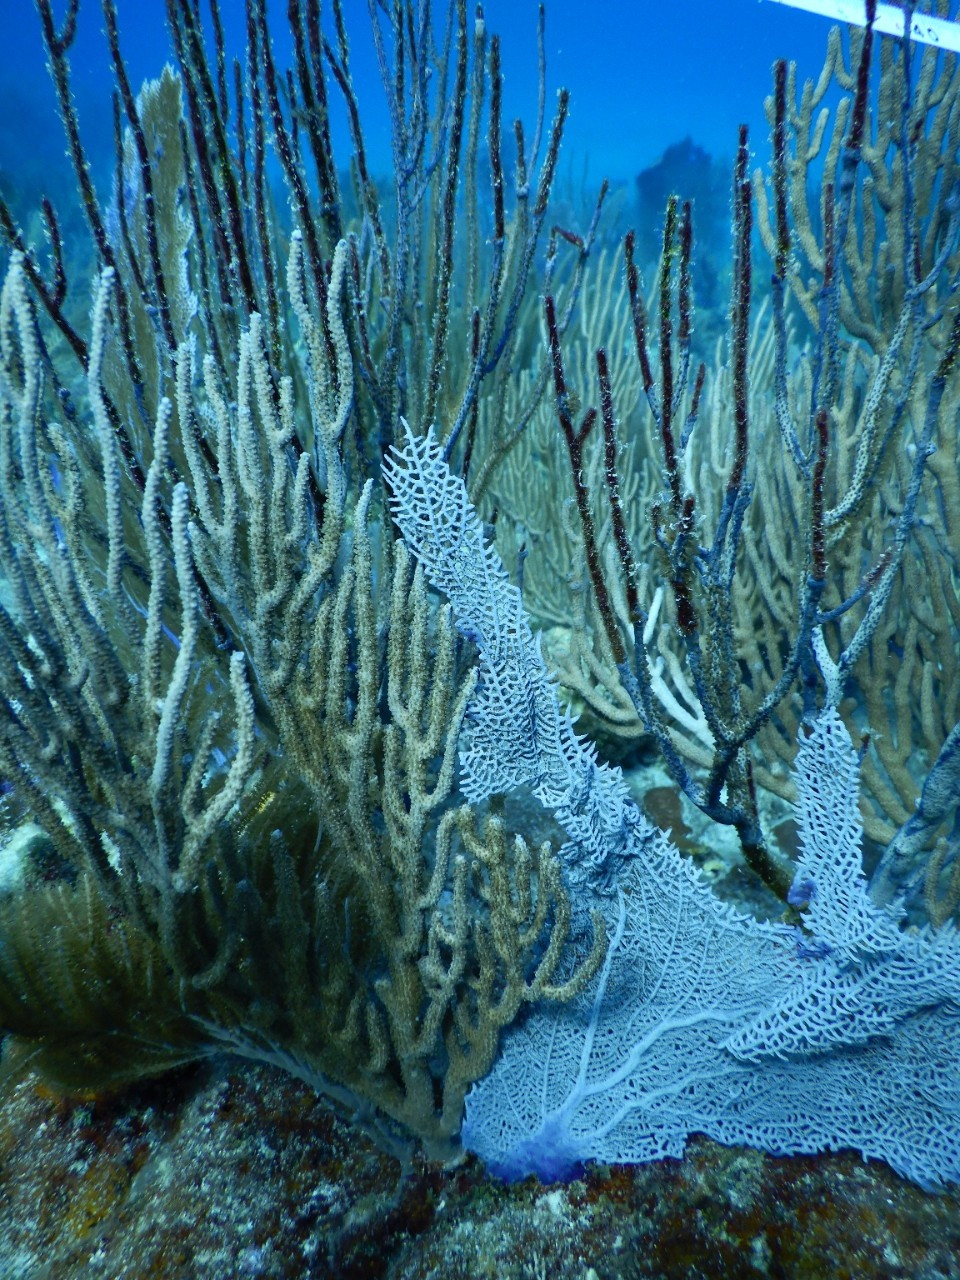 Damaged gorgonian corals on a reef off the coast of St. John, U.S. Virgin Islands. The living tissue on many of the branches has been chipped or torn off, leaving only the dark non-living core of the branch. Photo: Howard Lasker